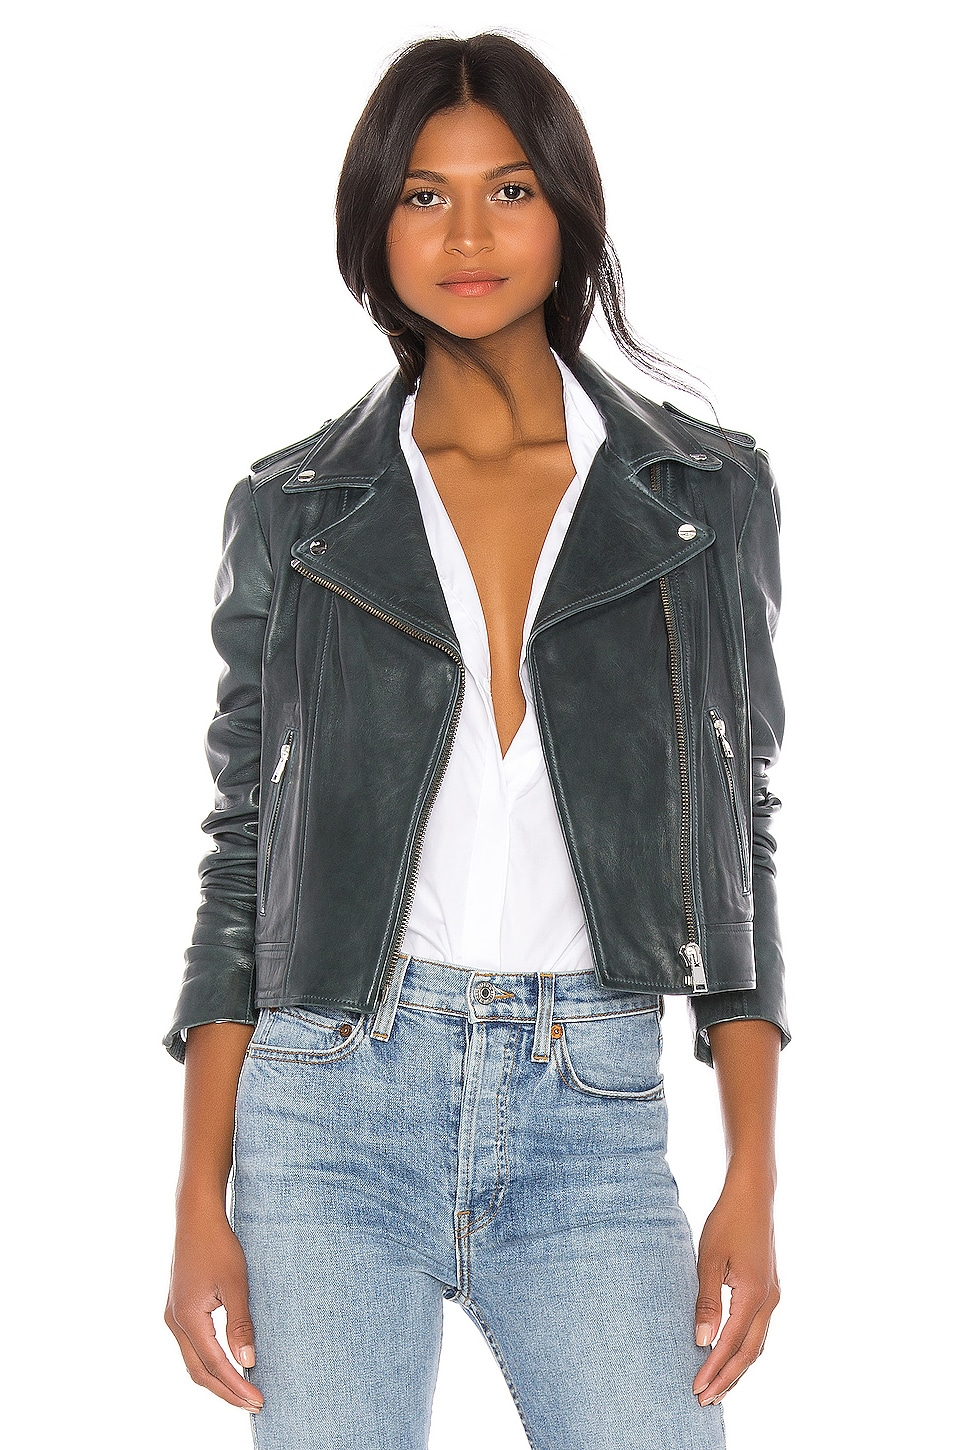 LAMARQUE Donna Leather Jacket in Graphite Alloy